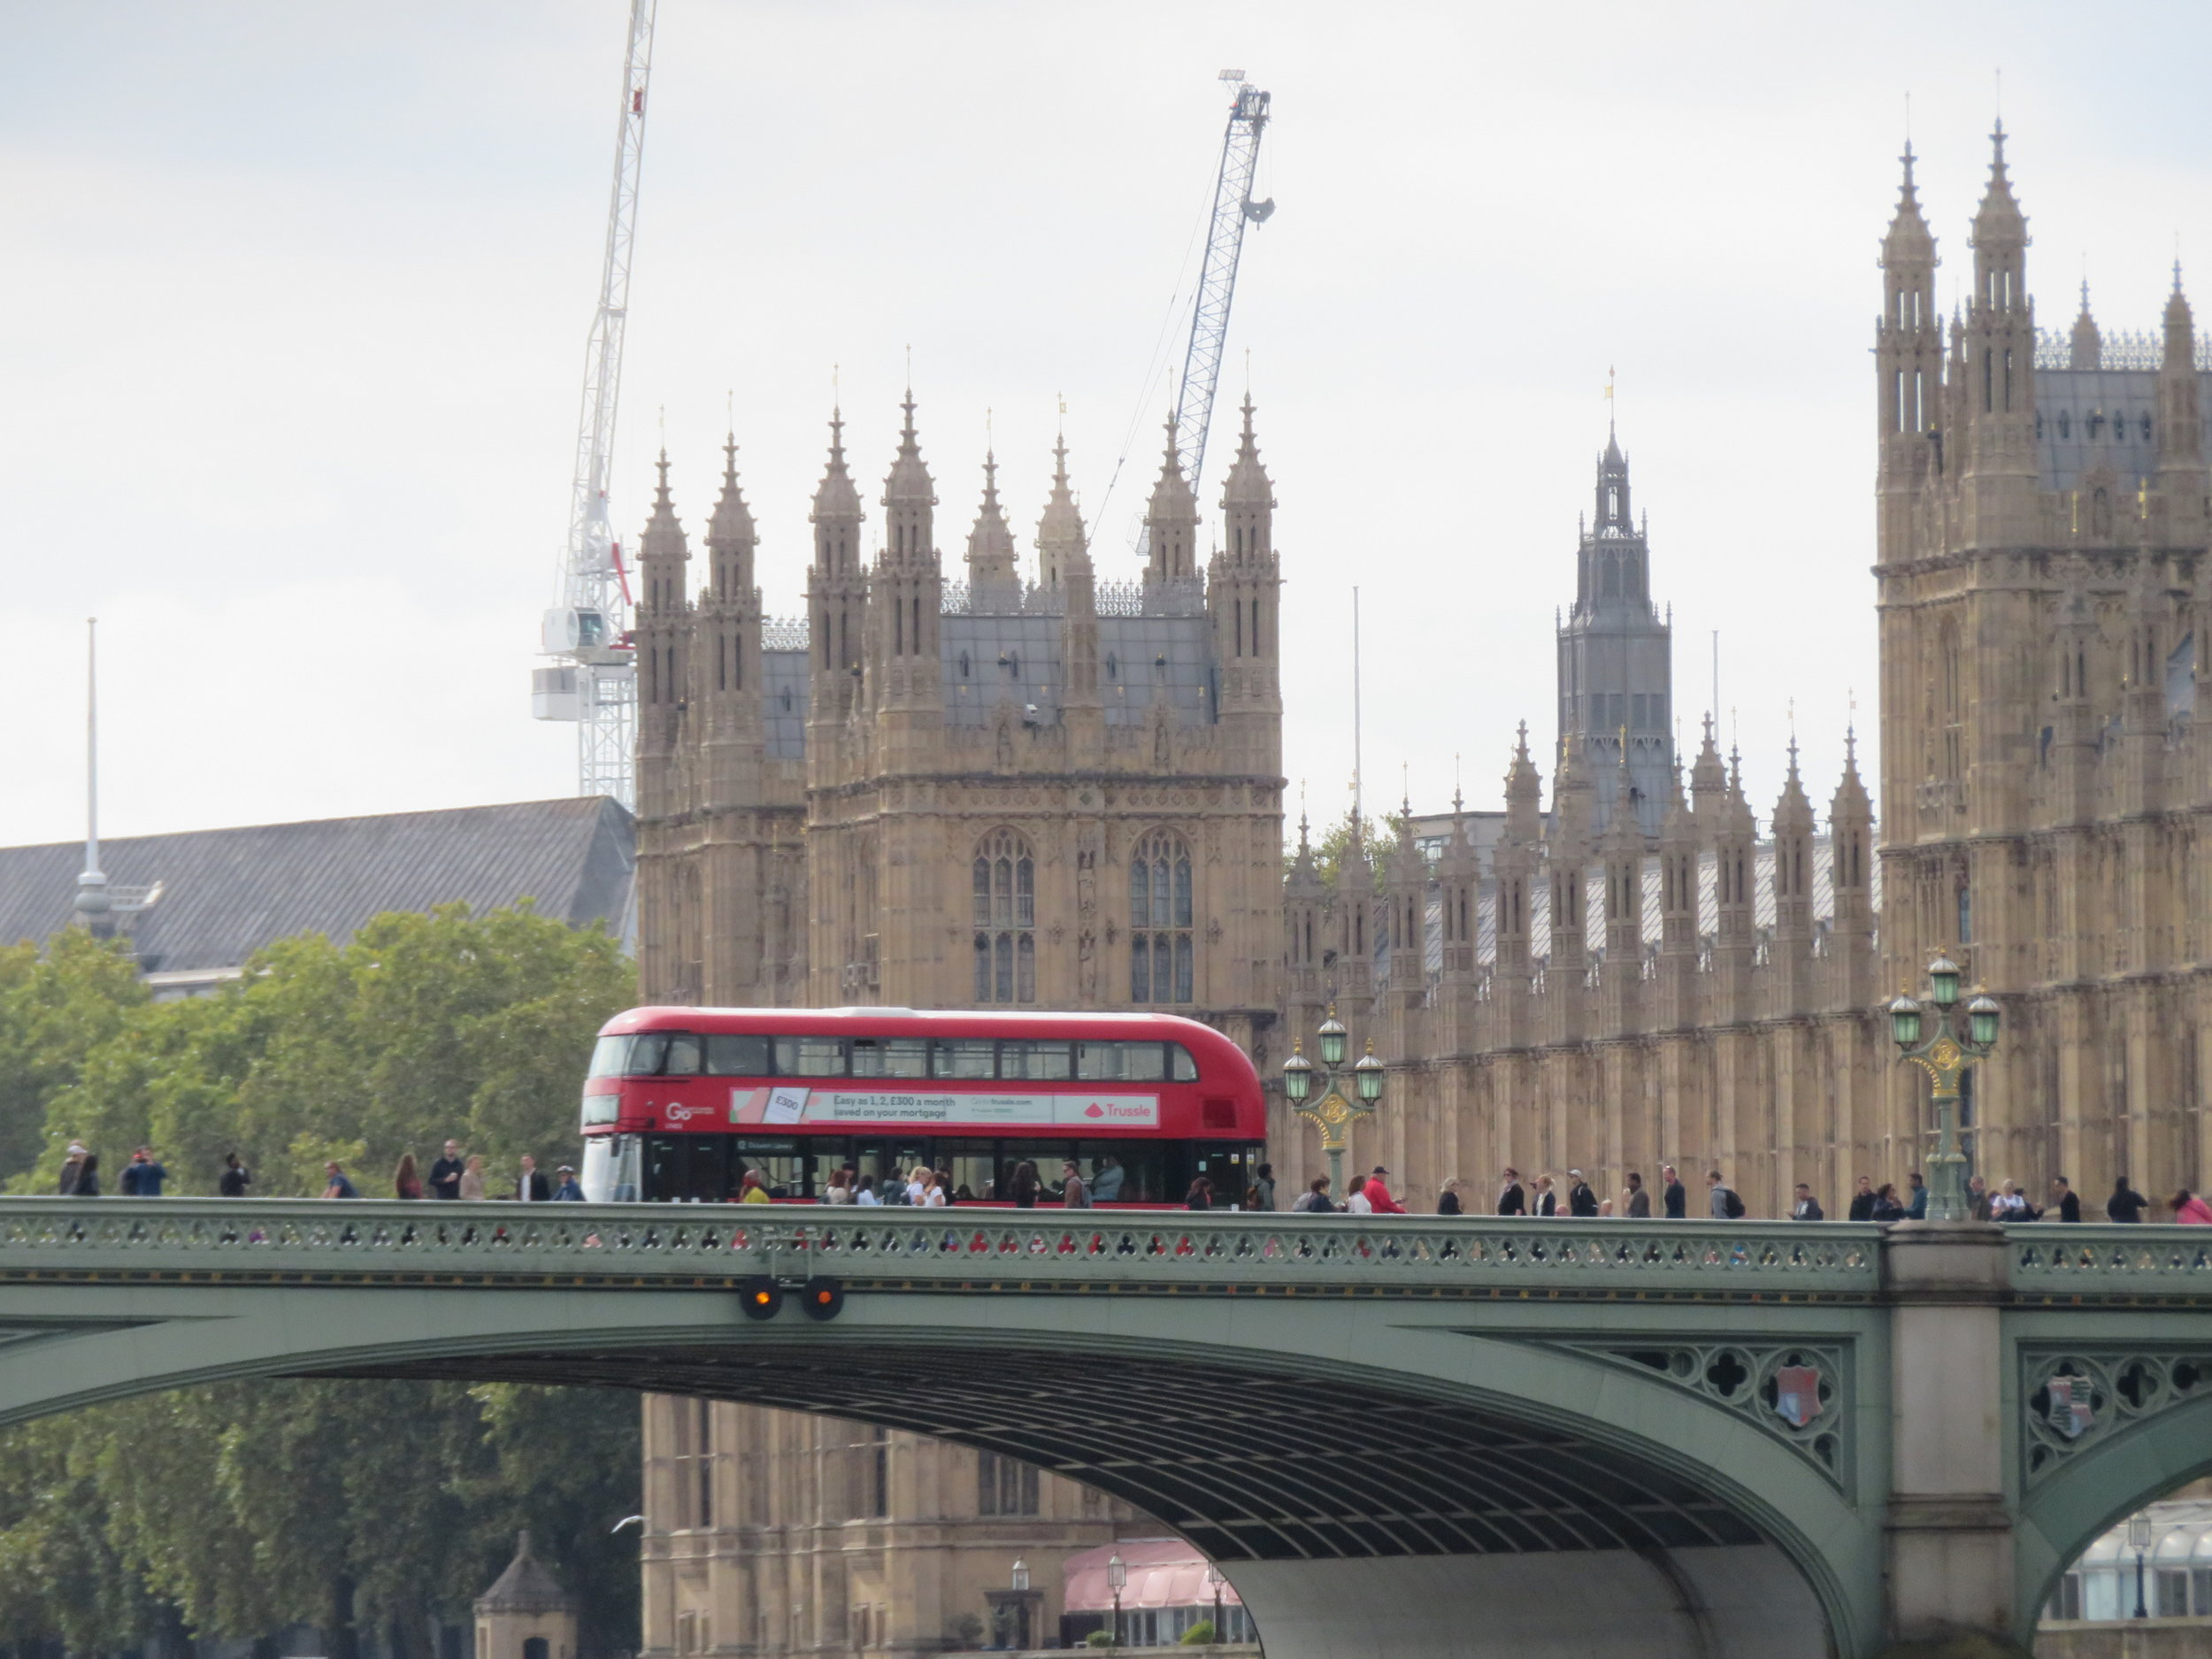 Westminster Palace was also under repair.